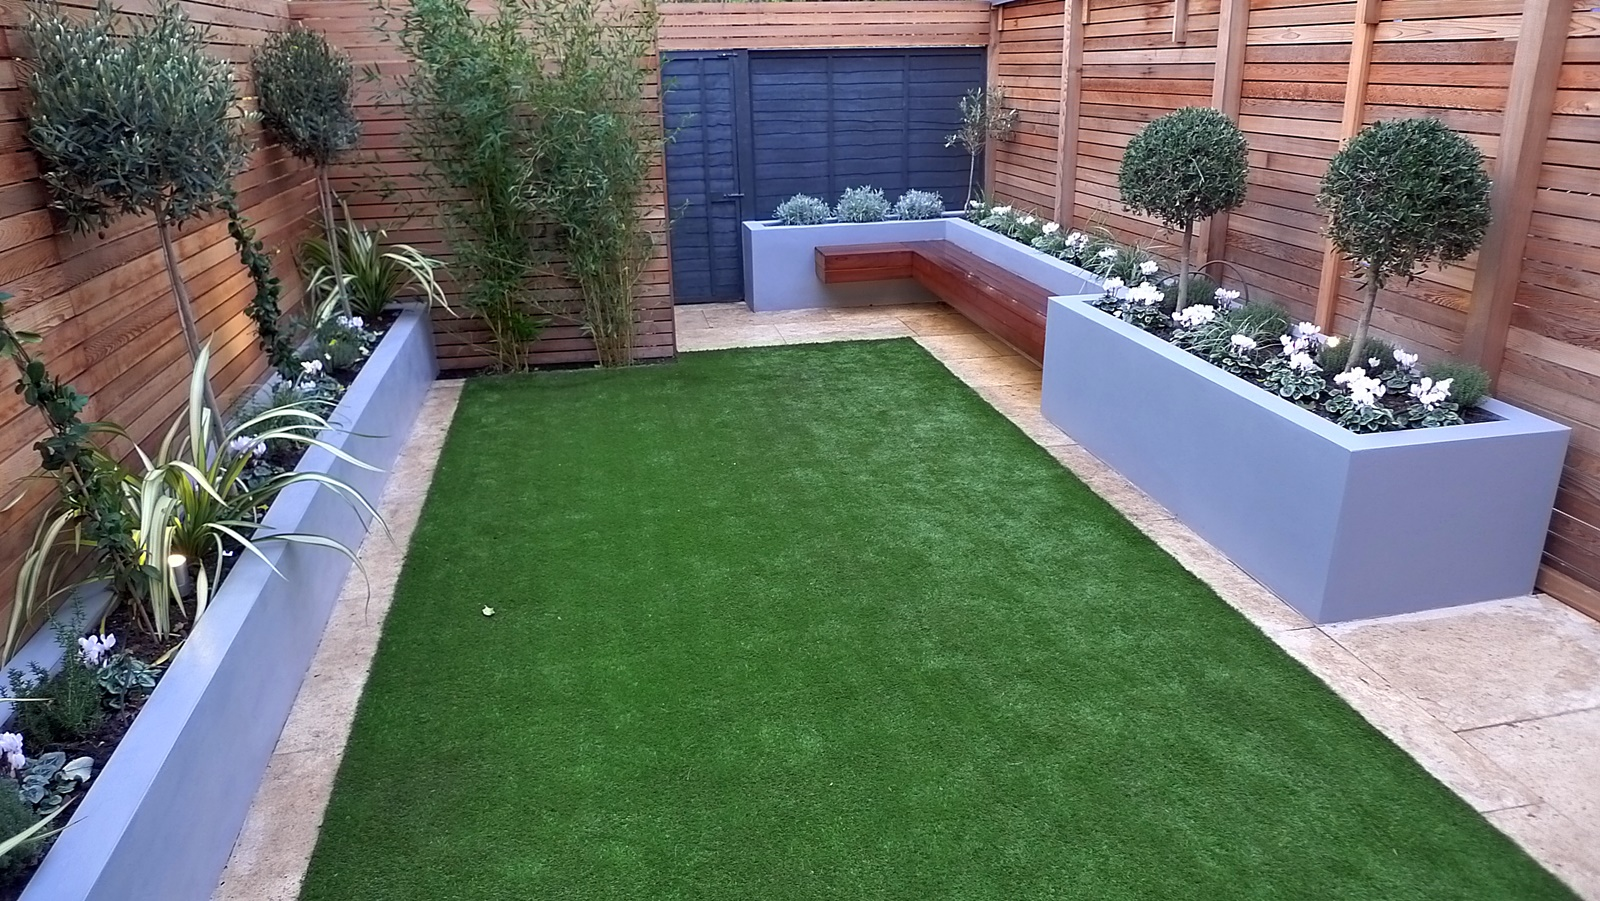 Modern garden design london garden design for Contemporary garden designs and ideas